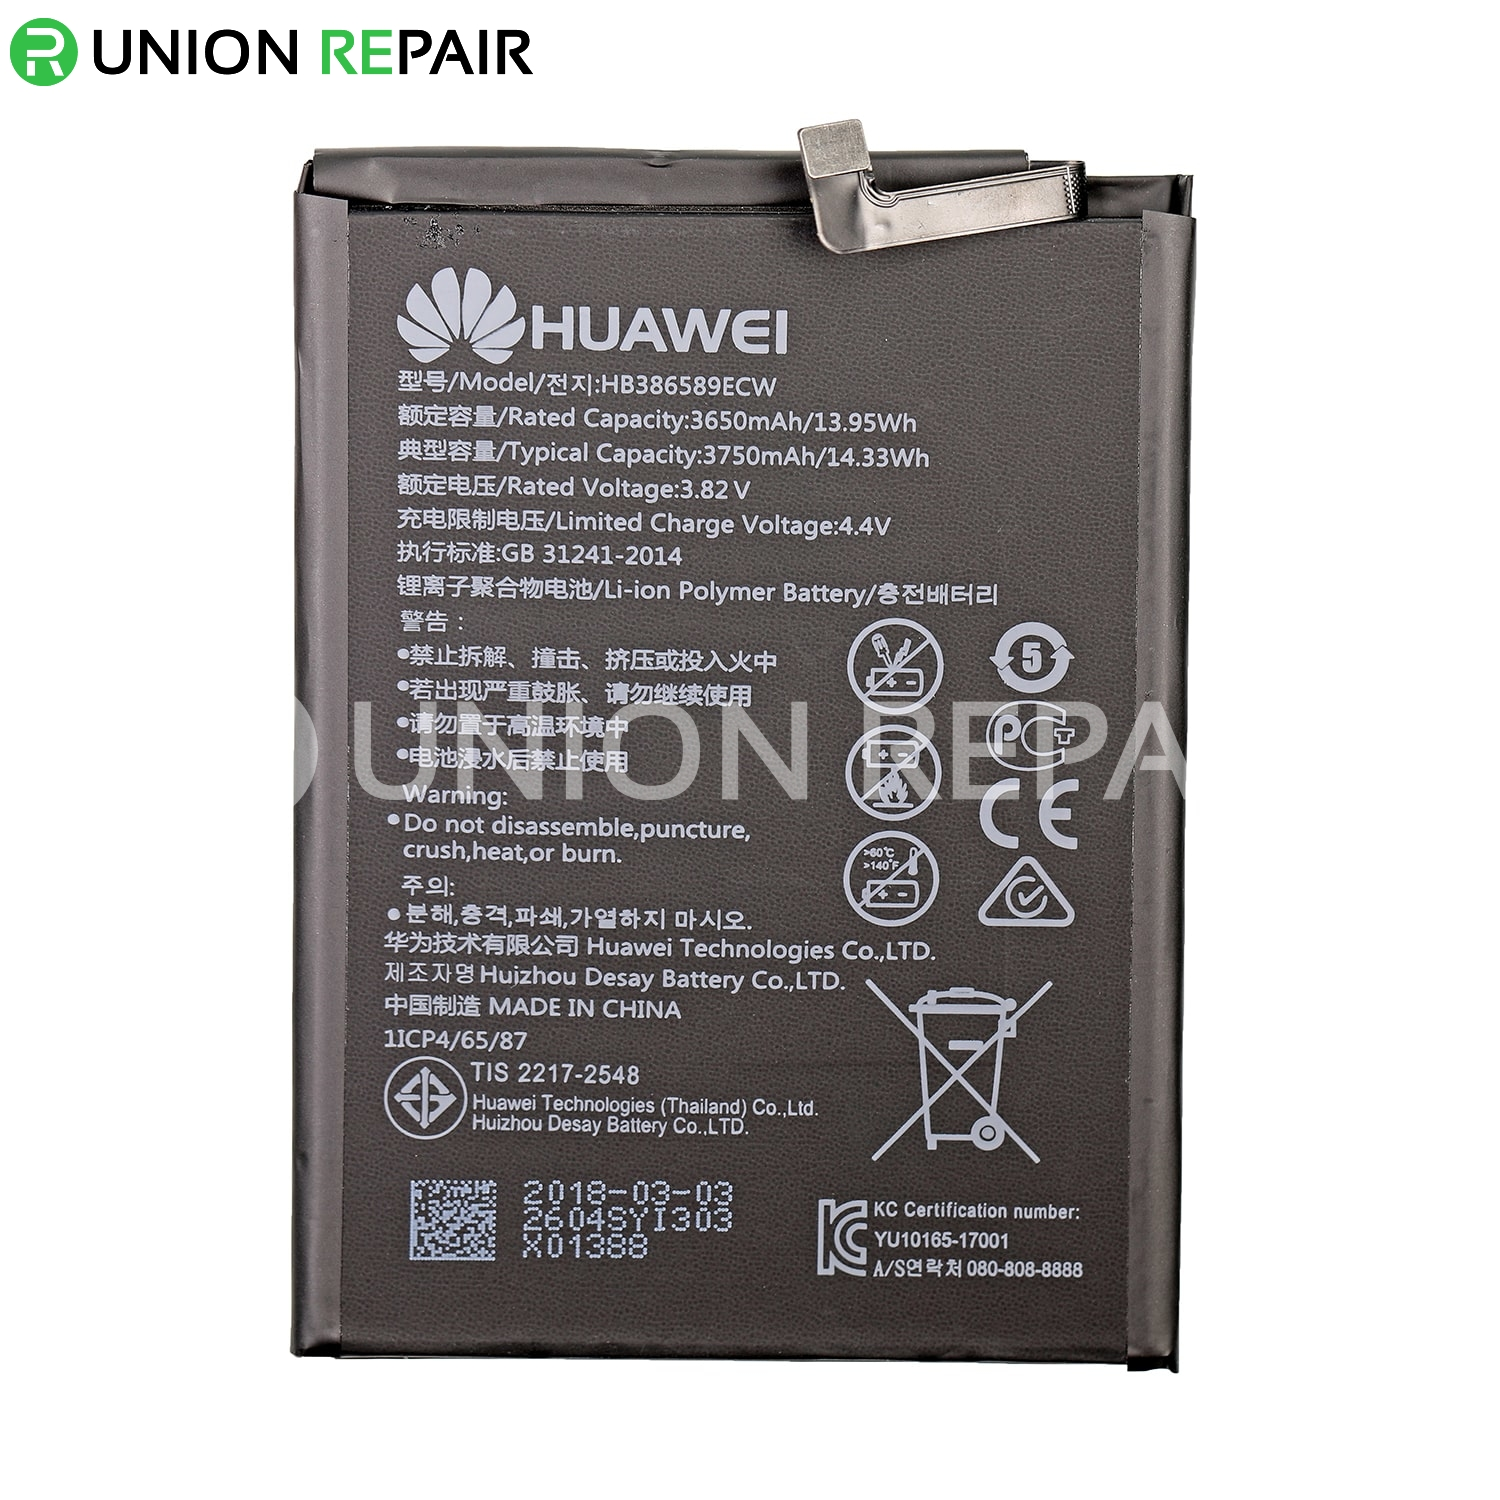 Replacement for Huawei P10 Plus Battery 3750mAh